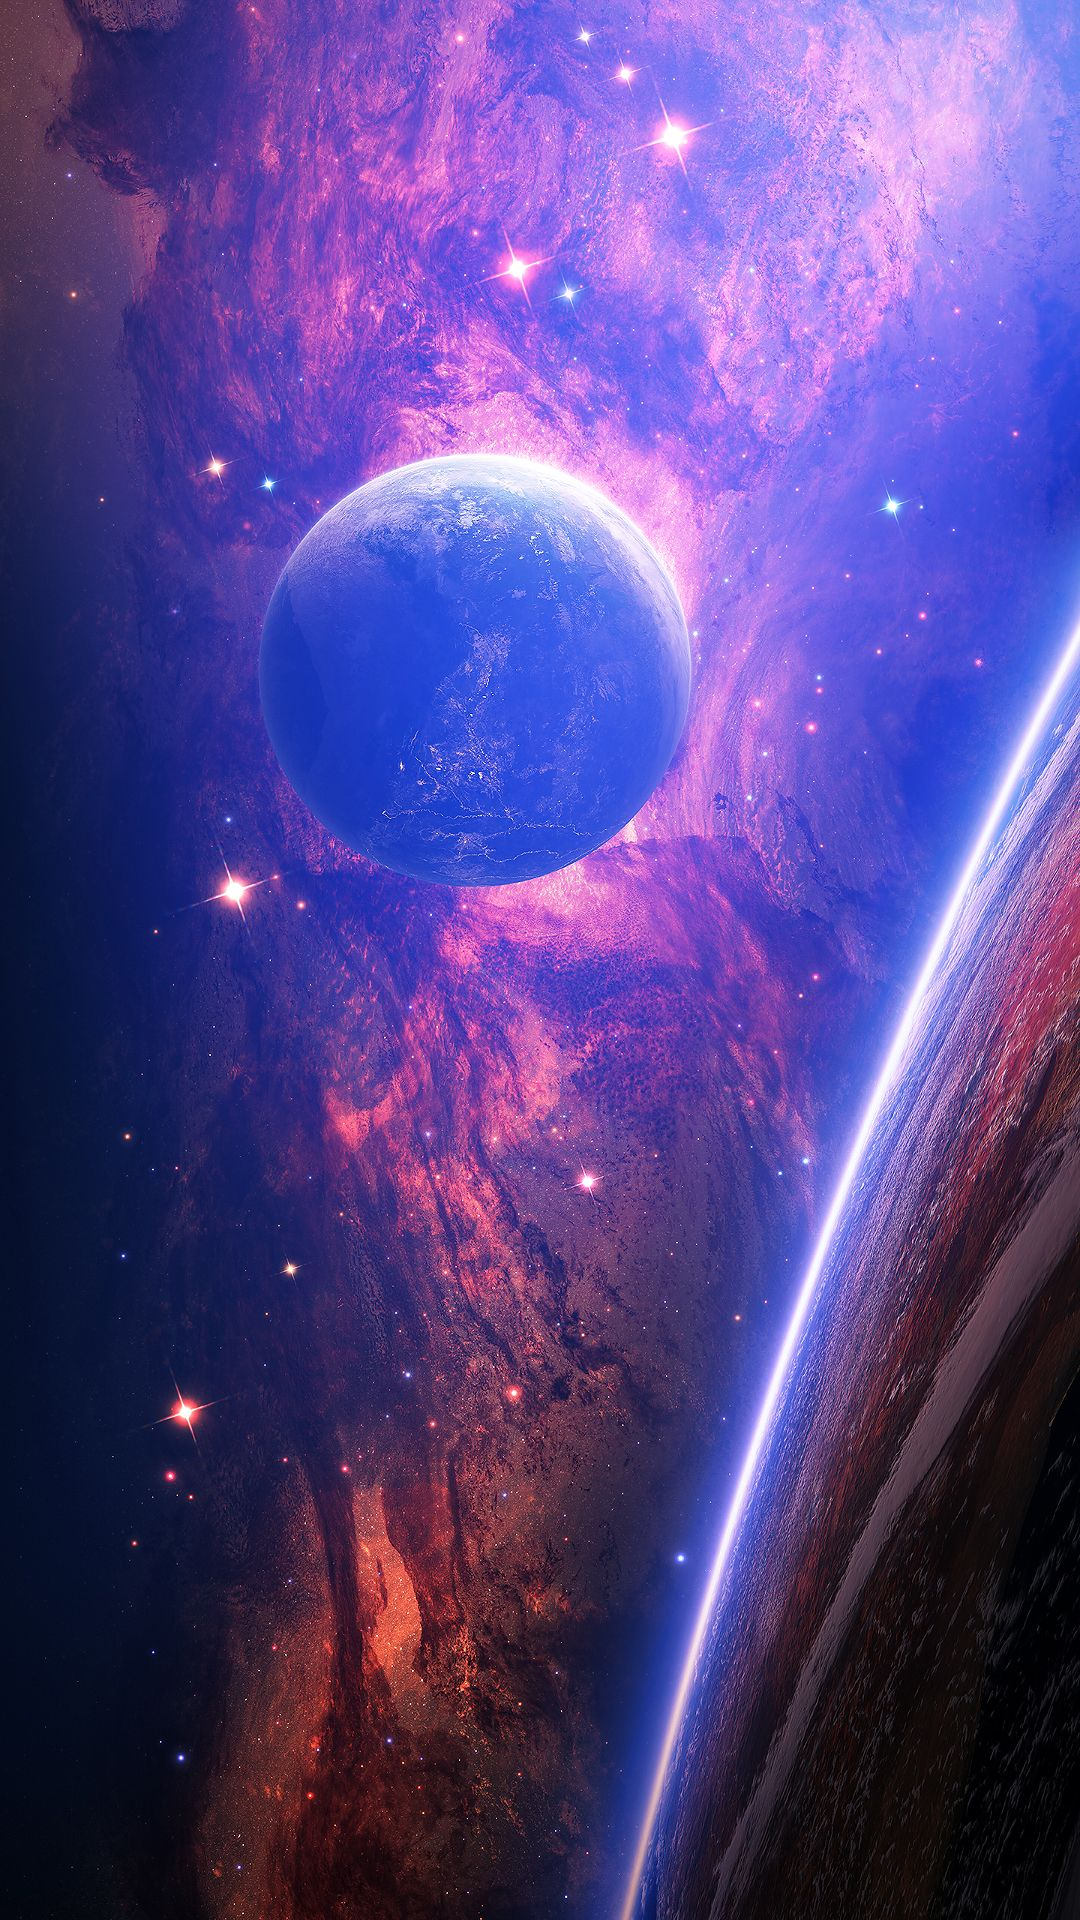 Galaxy explosion wallpapers top free galaxy explosion - Explosion wallpaper ...